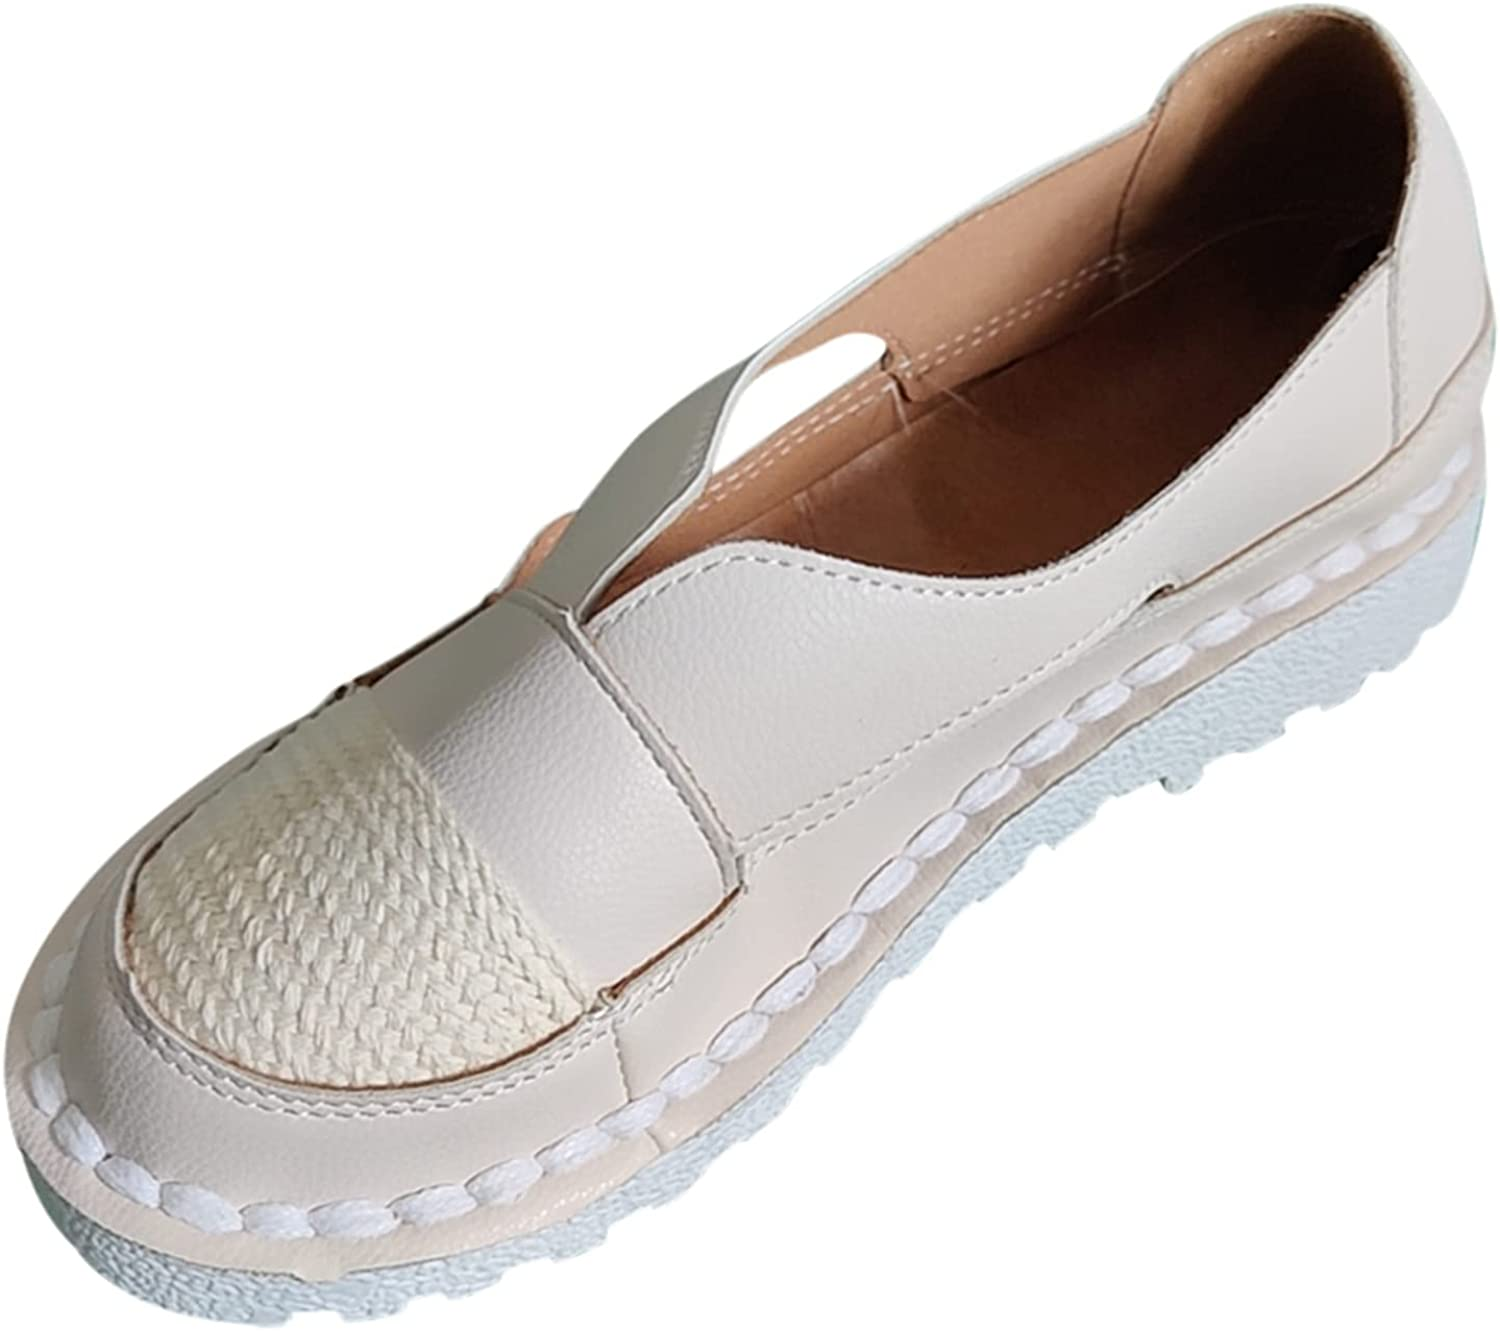 Women's Slip-Ons Flats Round Toe Max 57% OFF Side Loafers Leather Cutout Dri Bombing free shipping